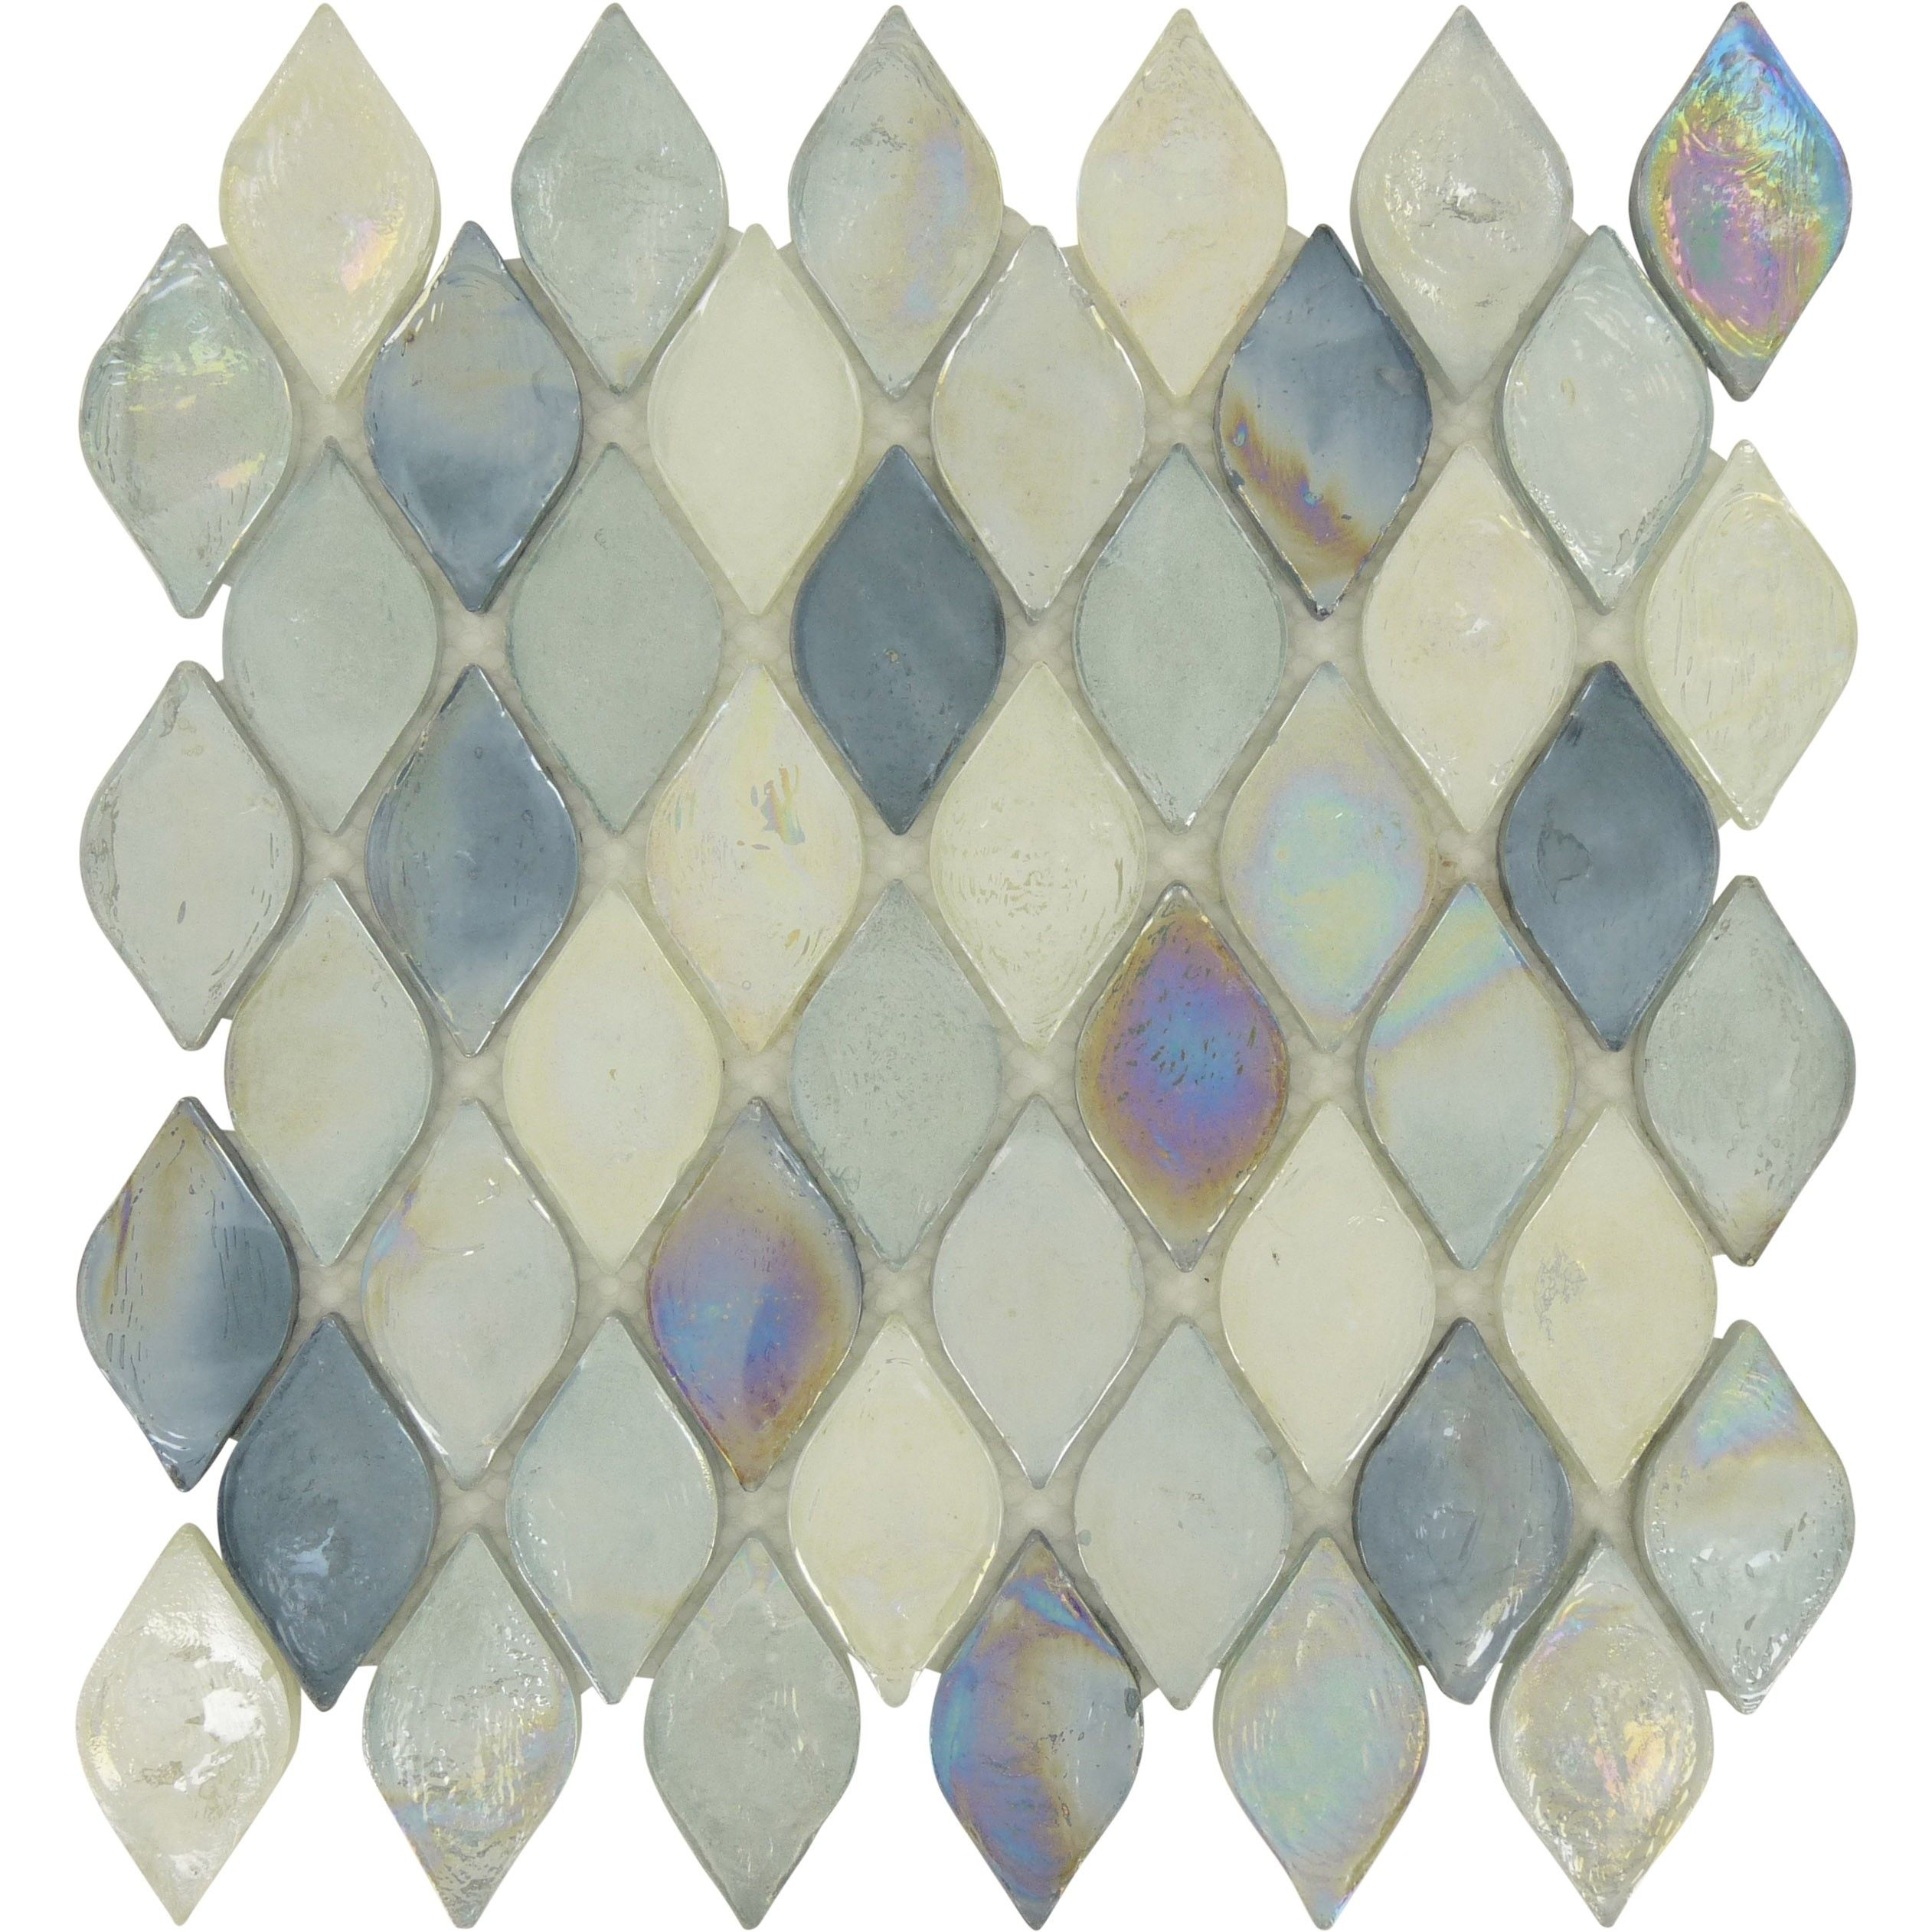 Sheet Size 9 1 2 X 9 3 4 Tile Size 1 1 8 X 2 Tiles Per Sheet 48 Tile Th Iridescent Glass Tiles Iridescent Tile Glass Mosaic Backsplash Kitchen